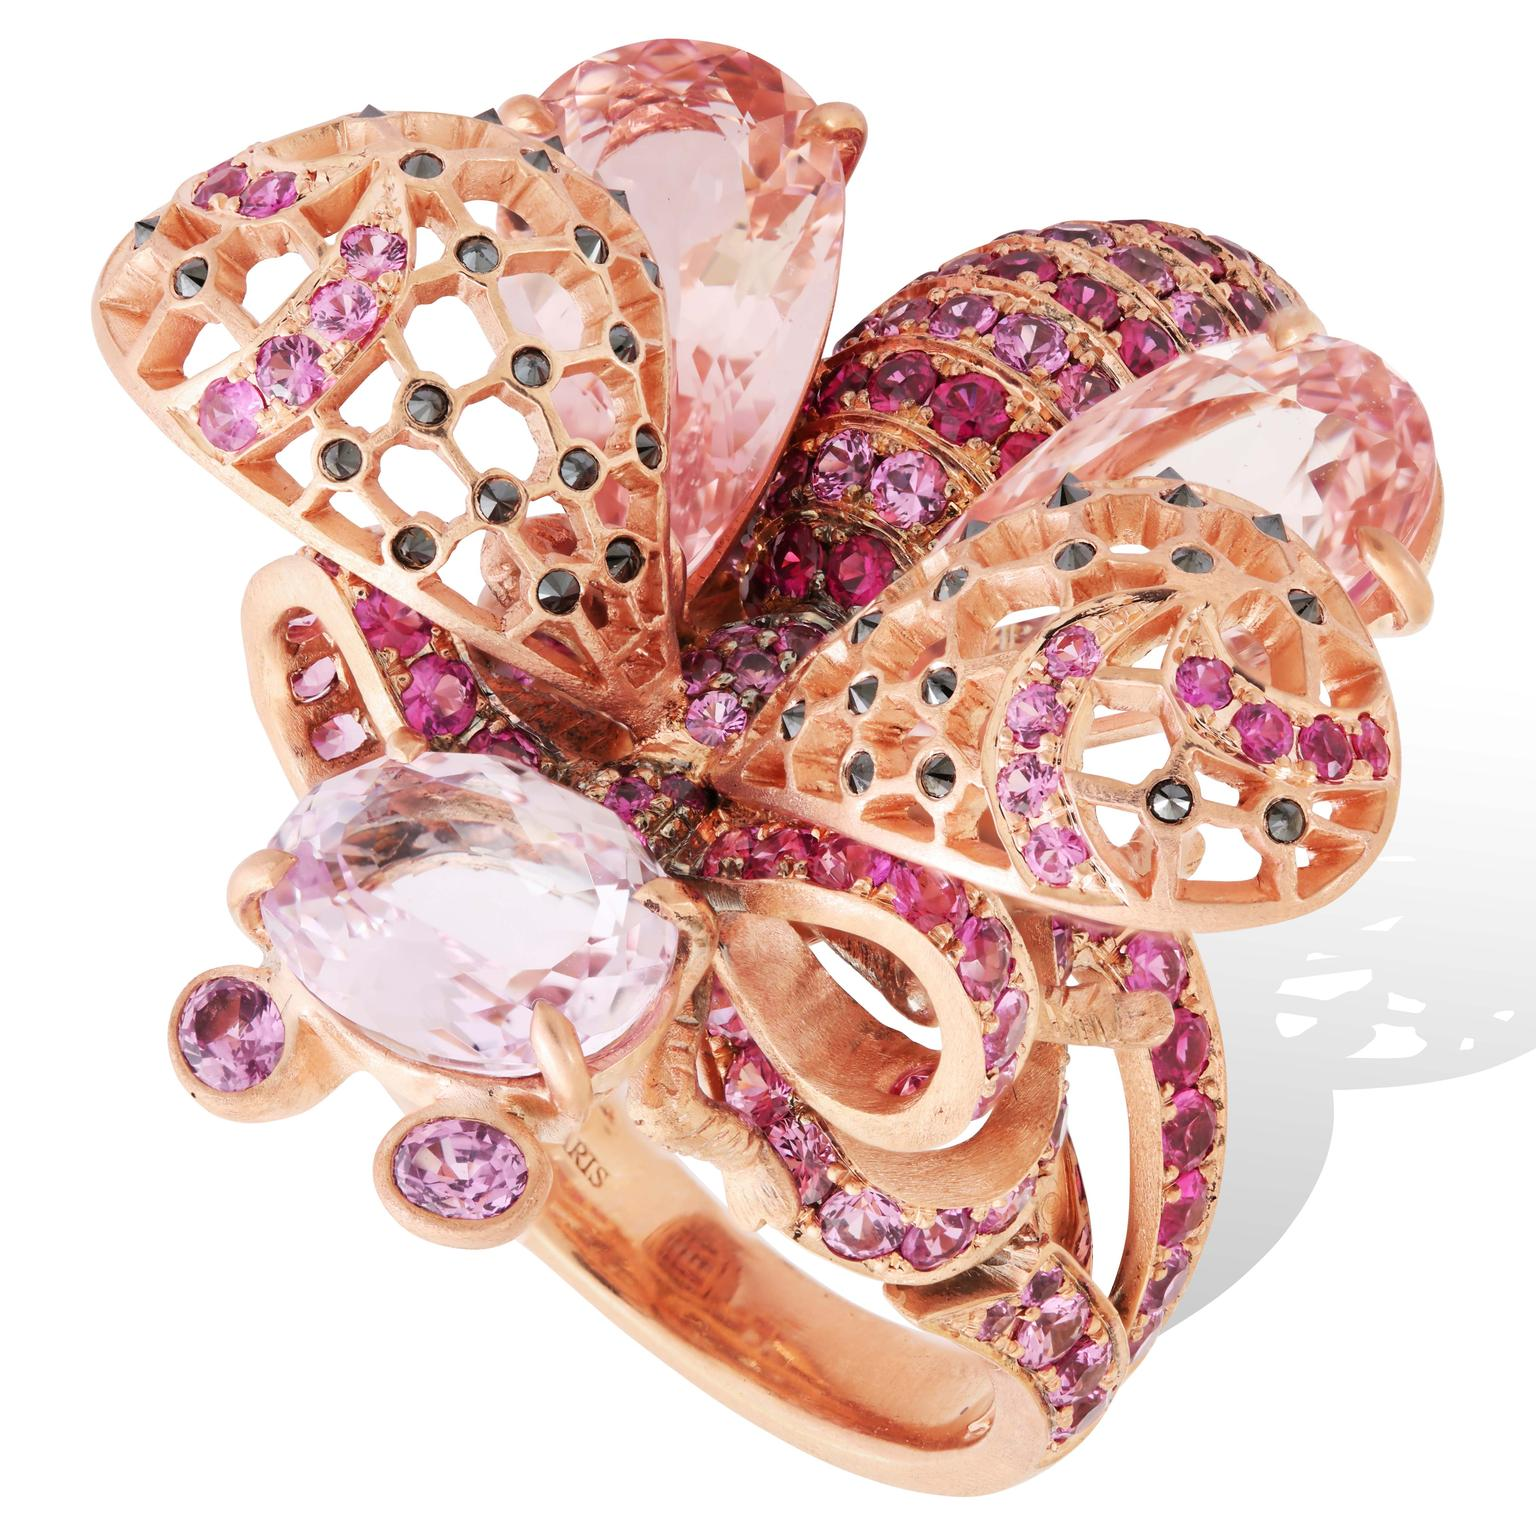 Lydia Courteille La Vie en Rose morganite ring